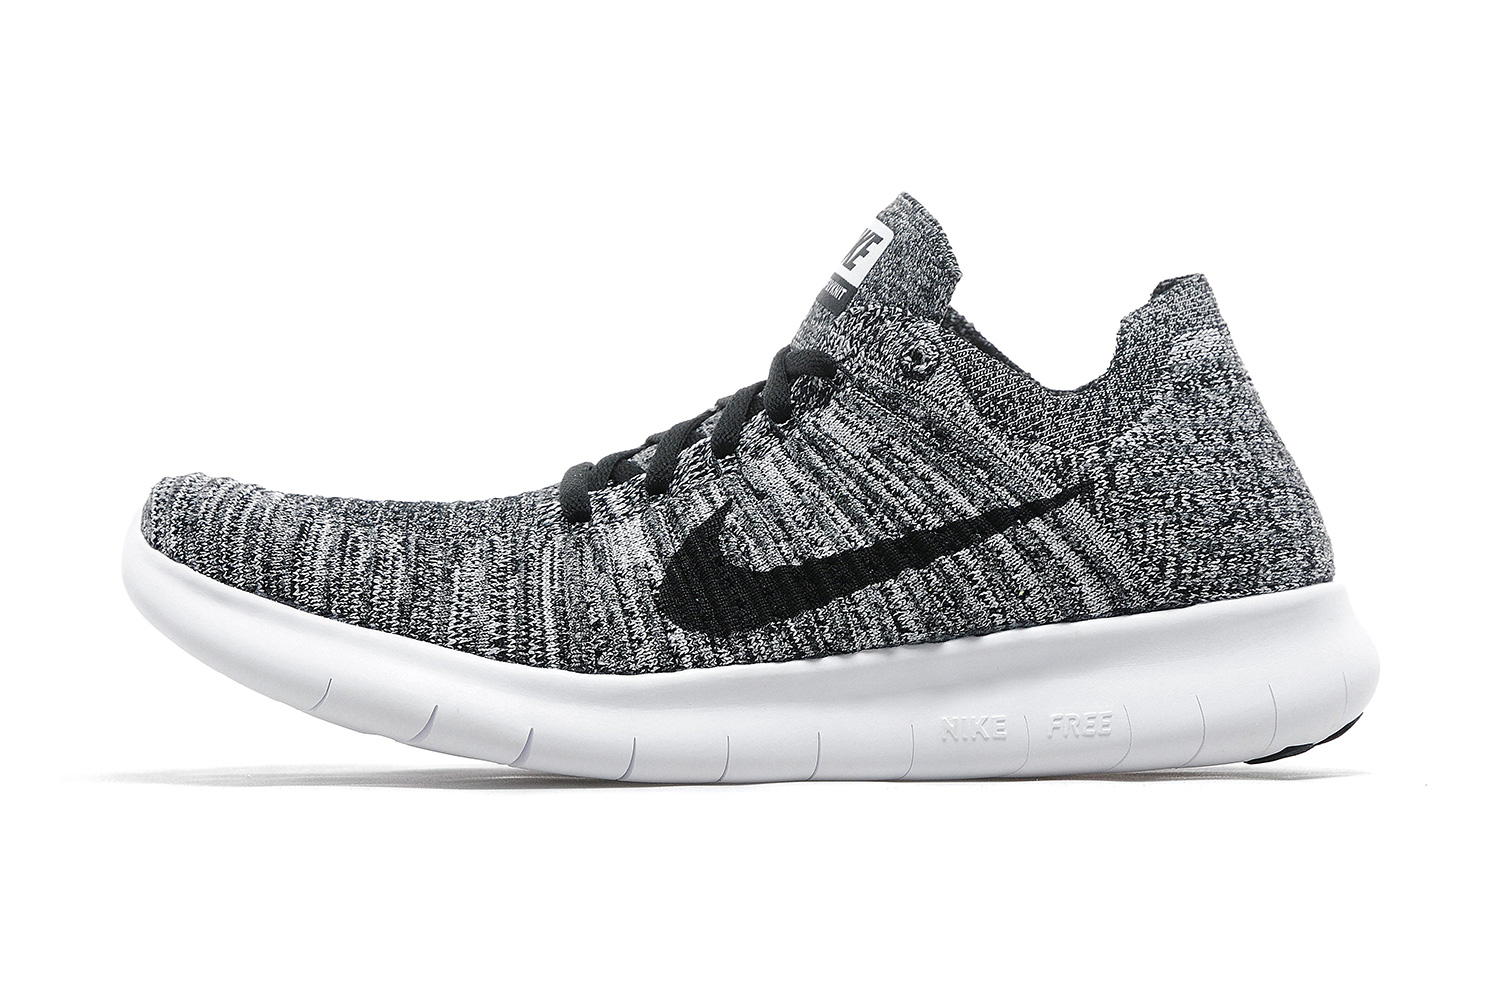 nike free flyknit rn oreo. Black Bedroom Furniture Sets. Home Design Ideas